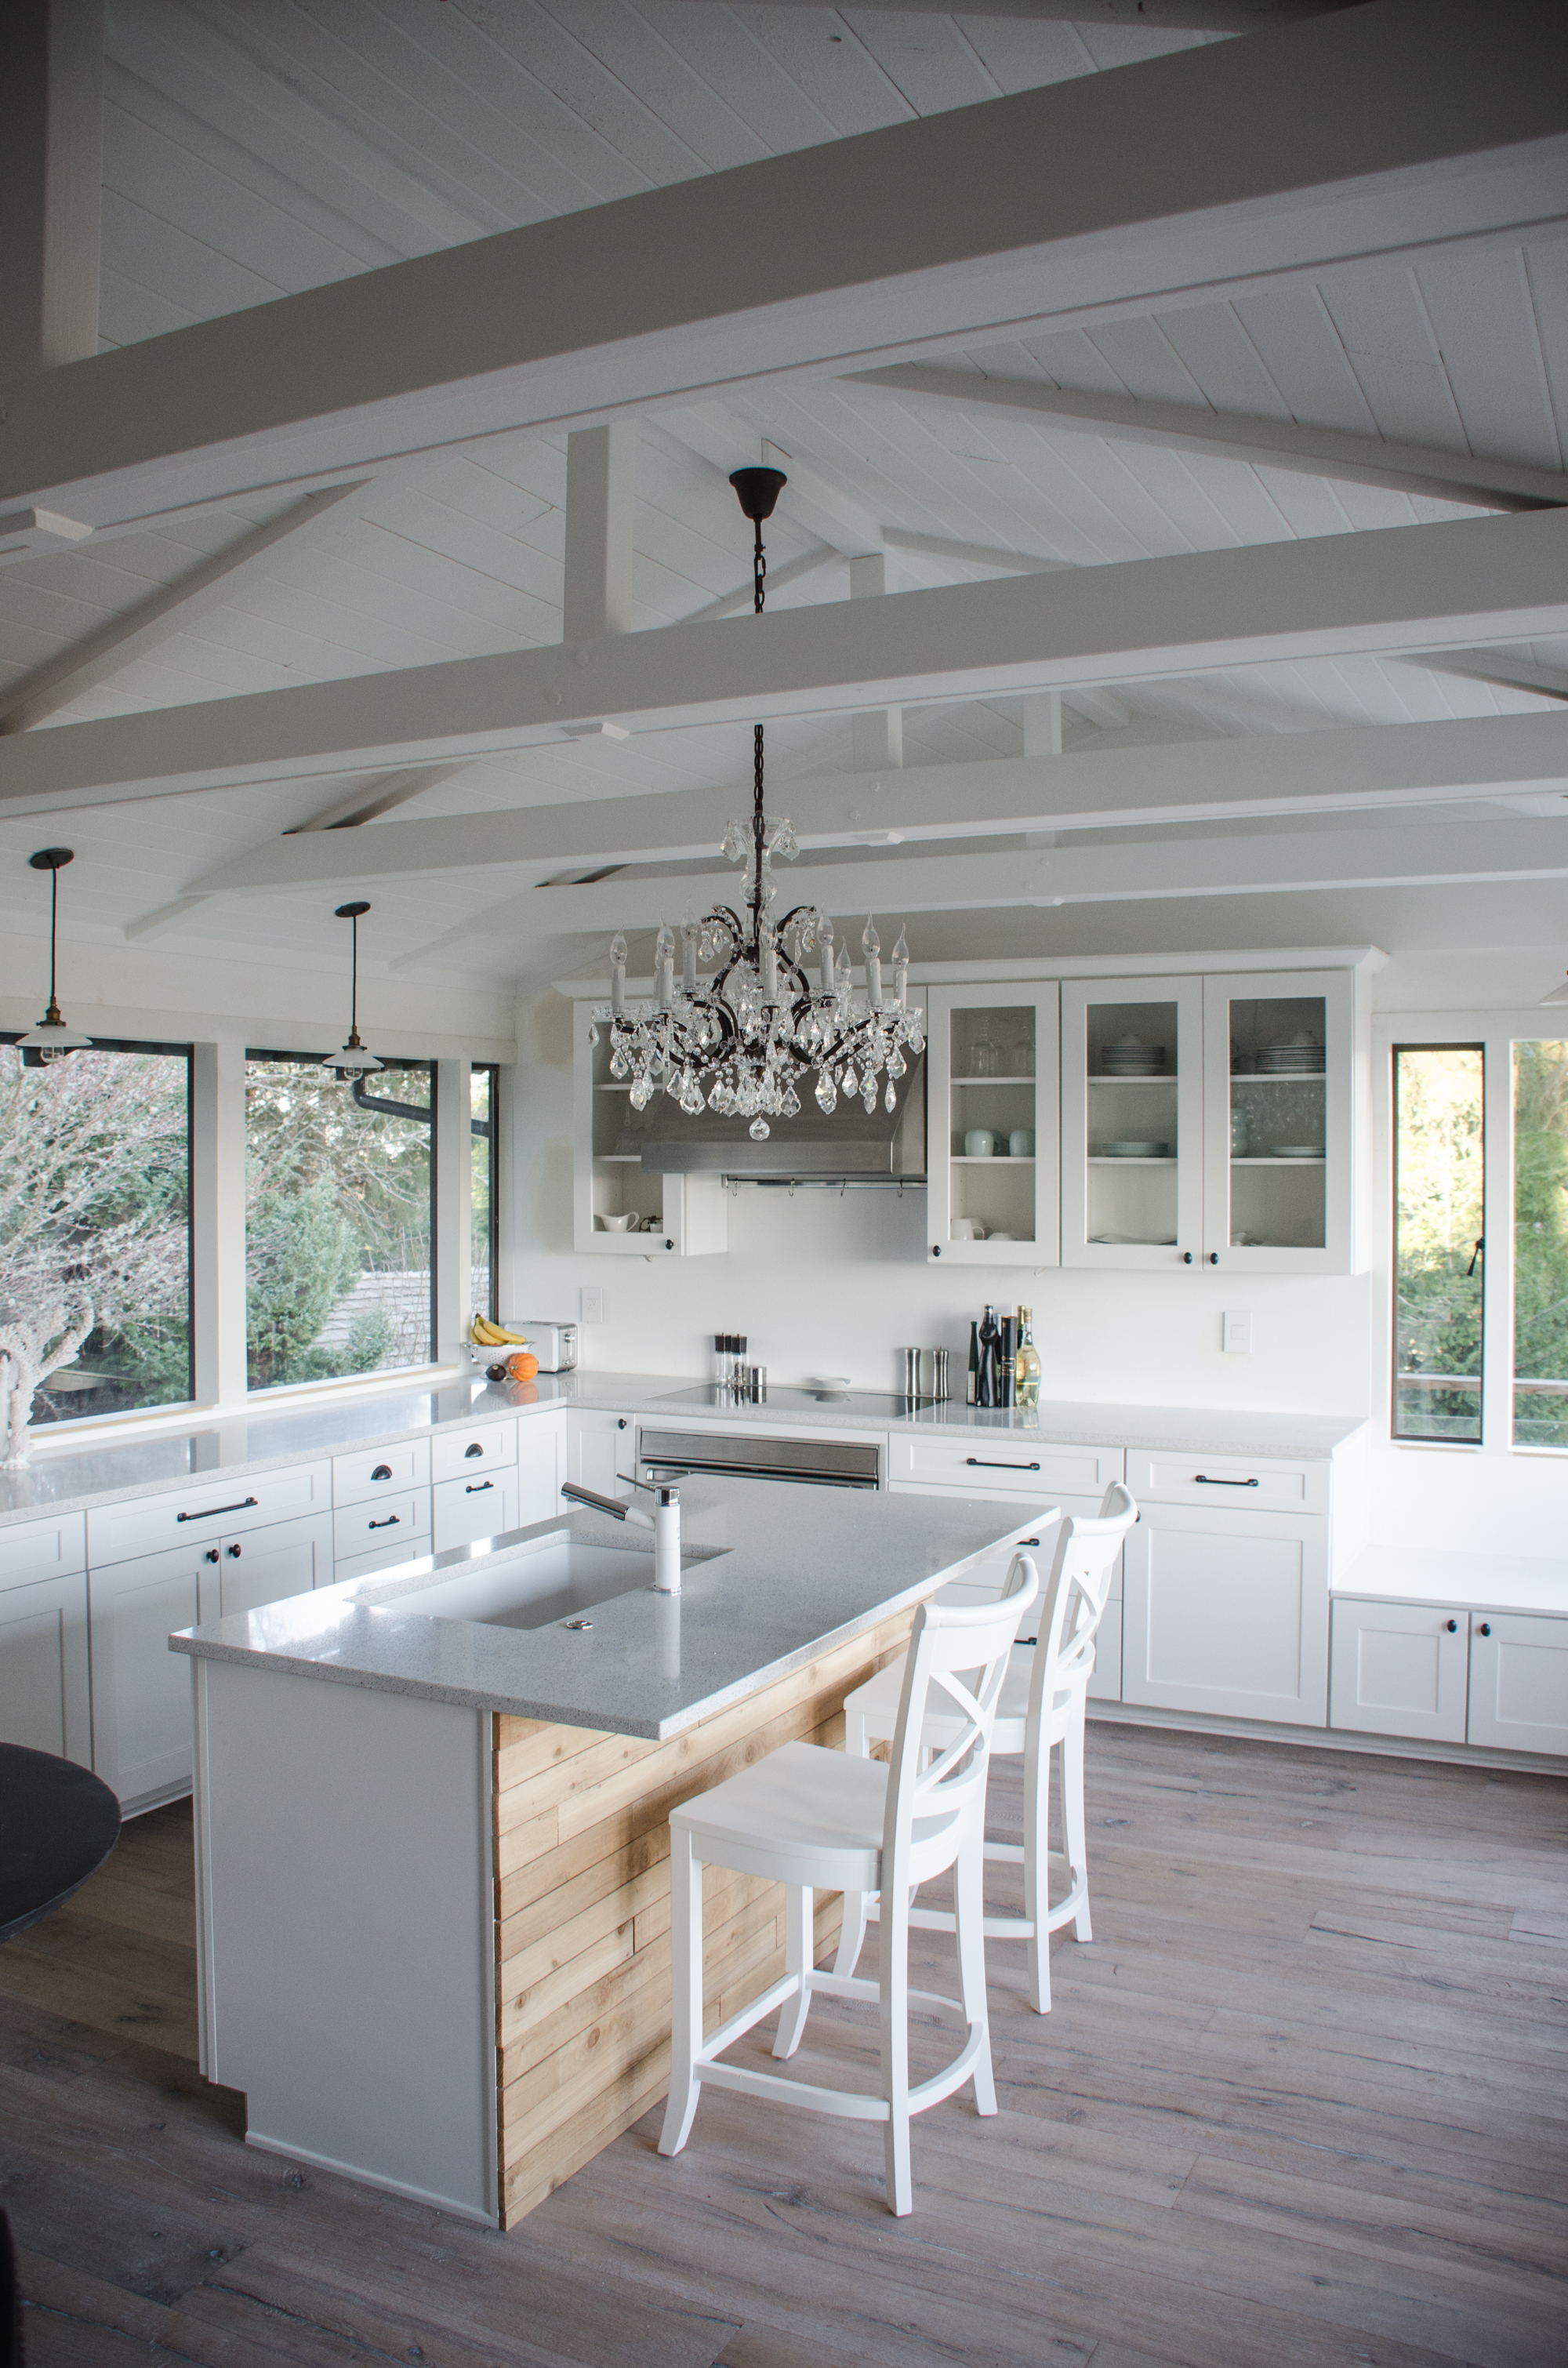 Vashon island kitchen part 2